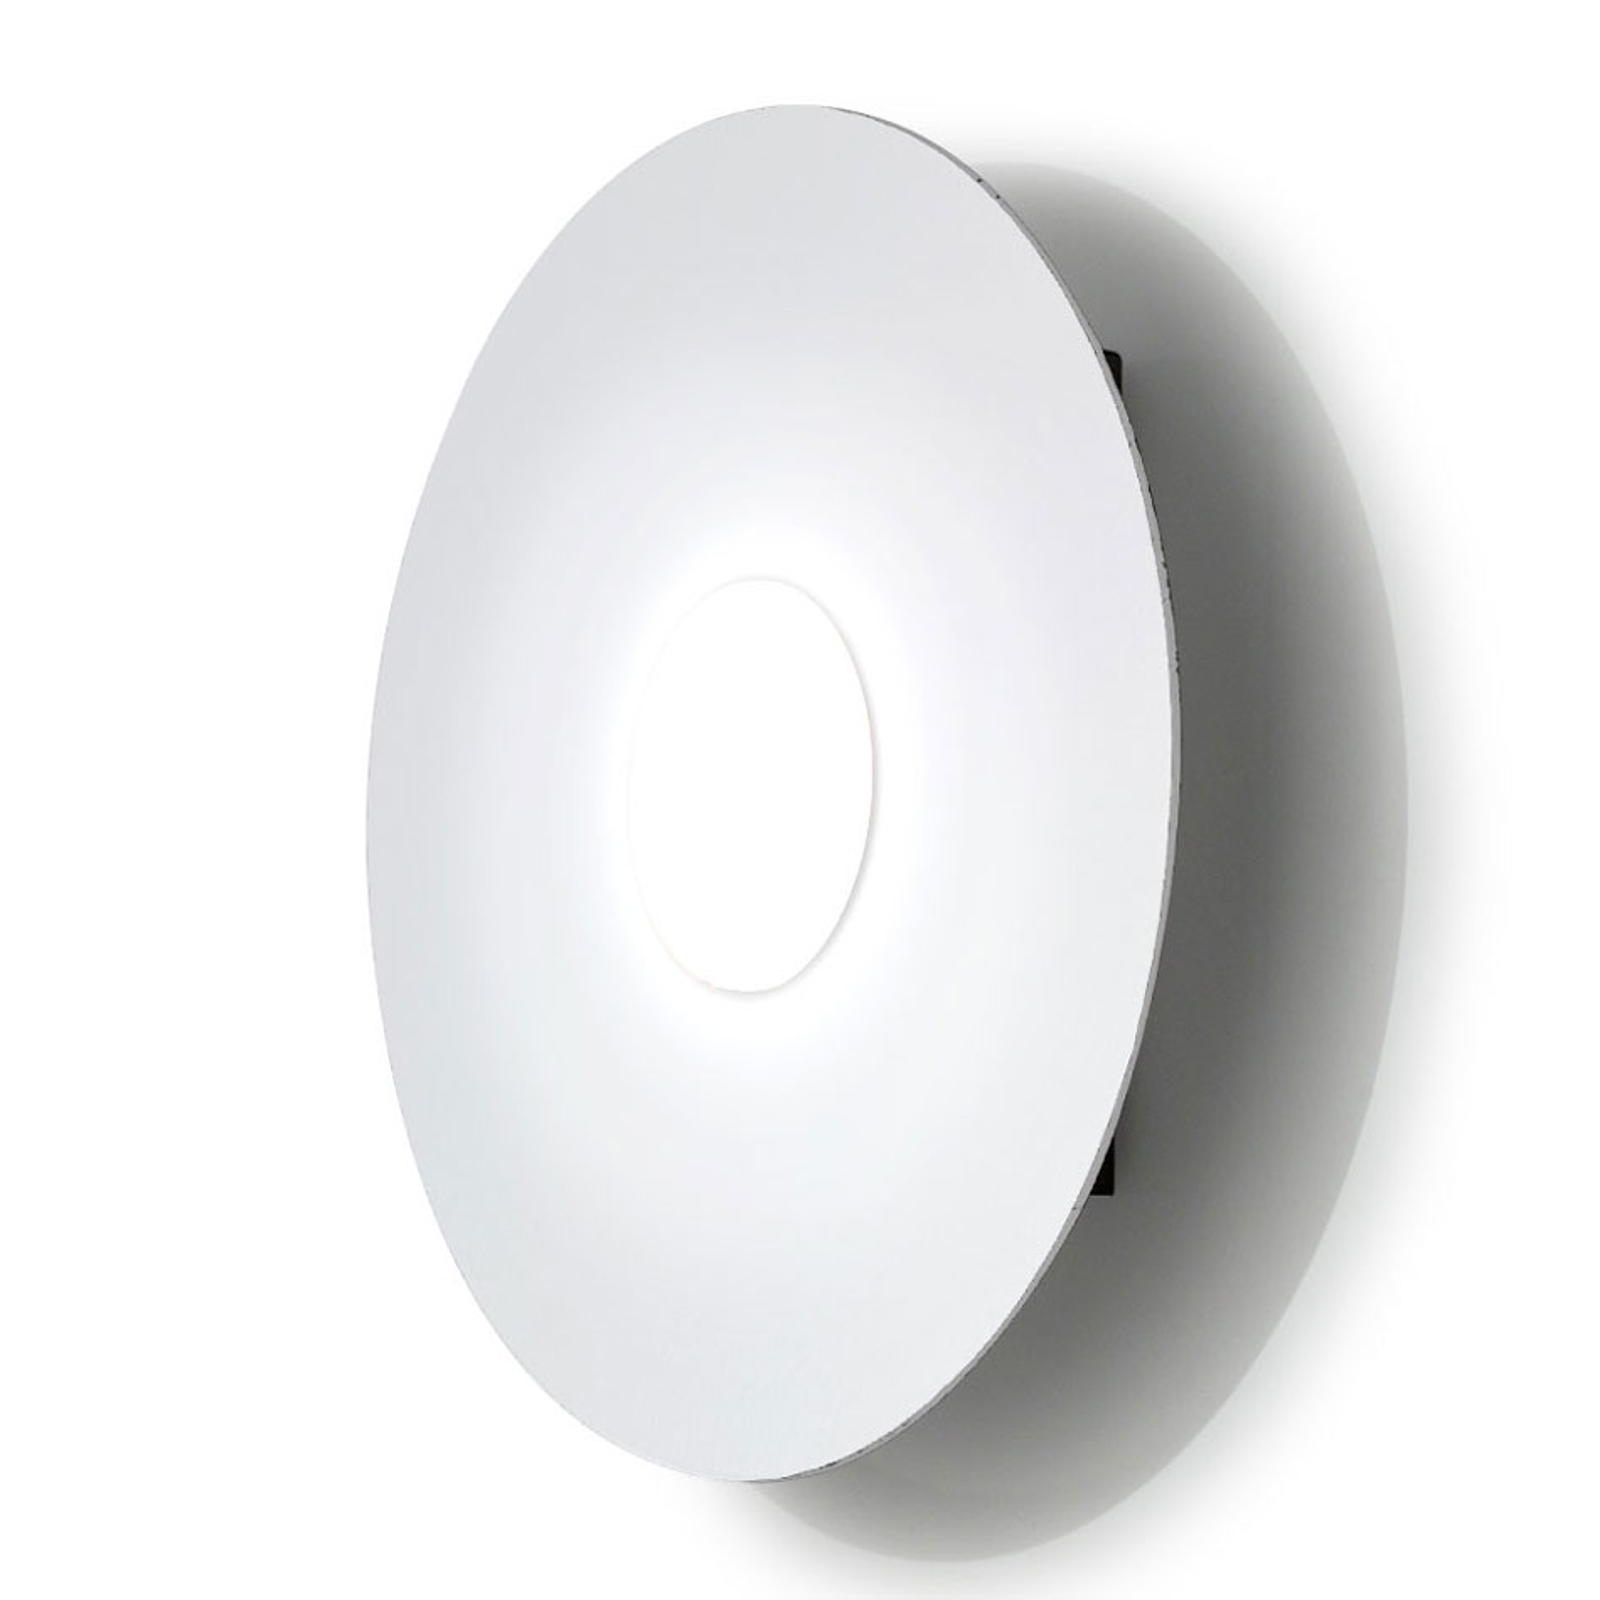 LED wandlamp Circle, wit, 1-lamp, dimbaar